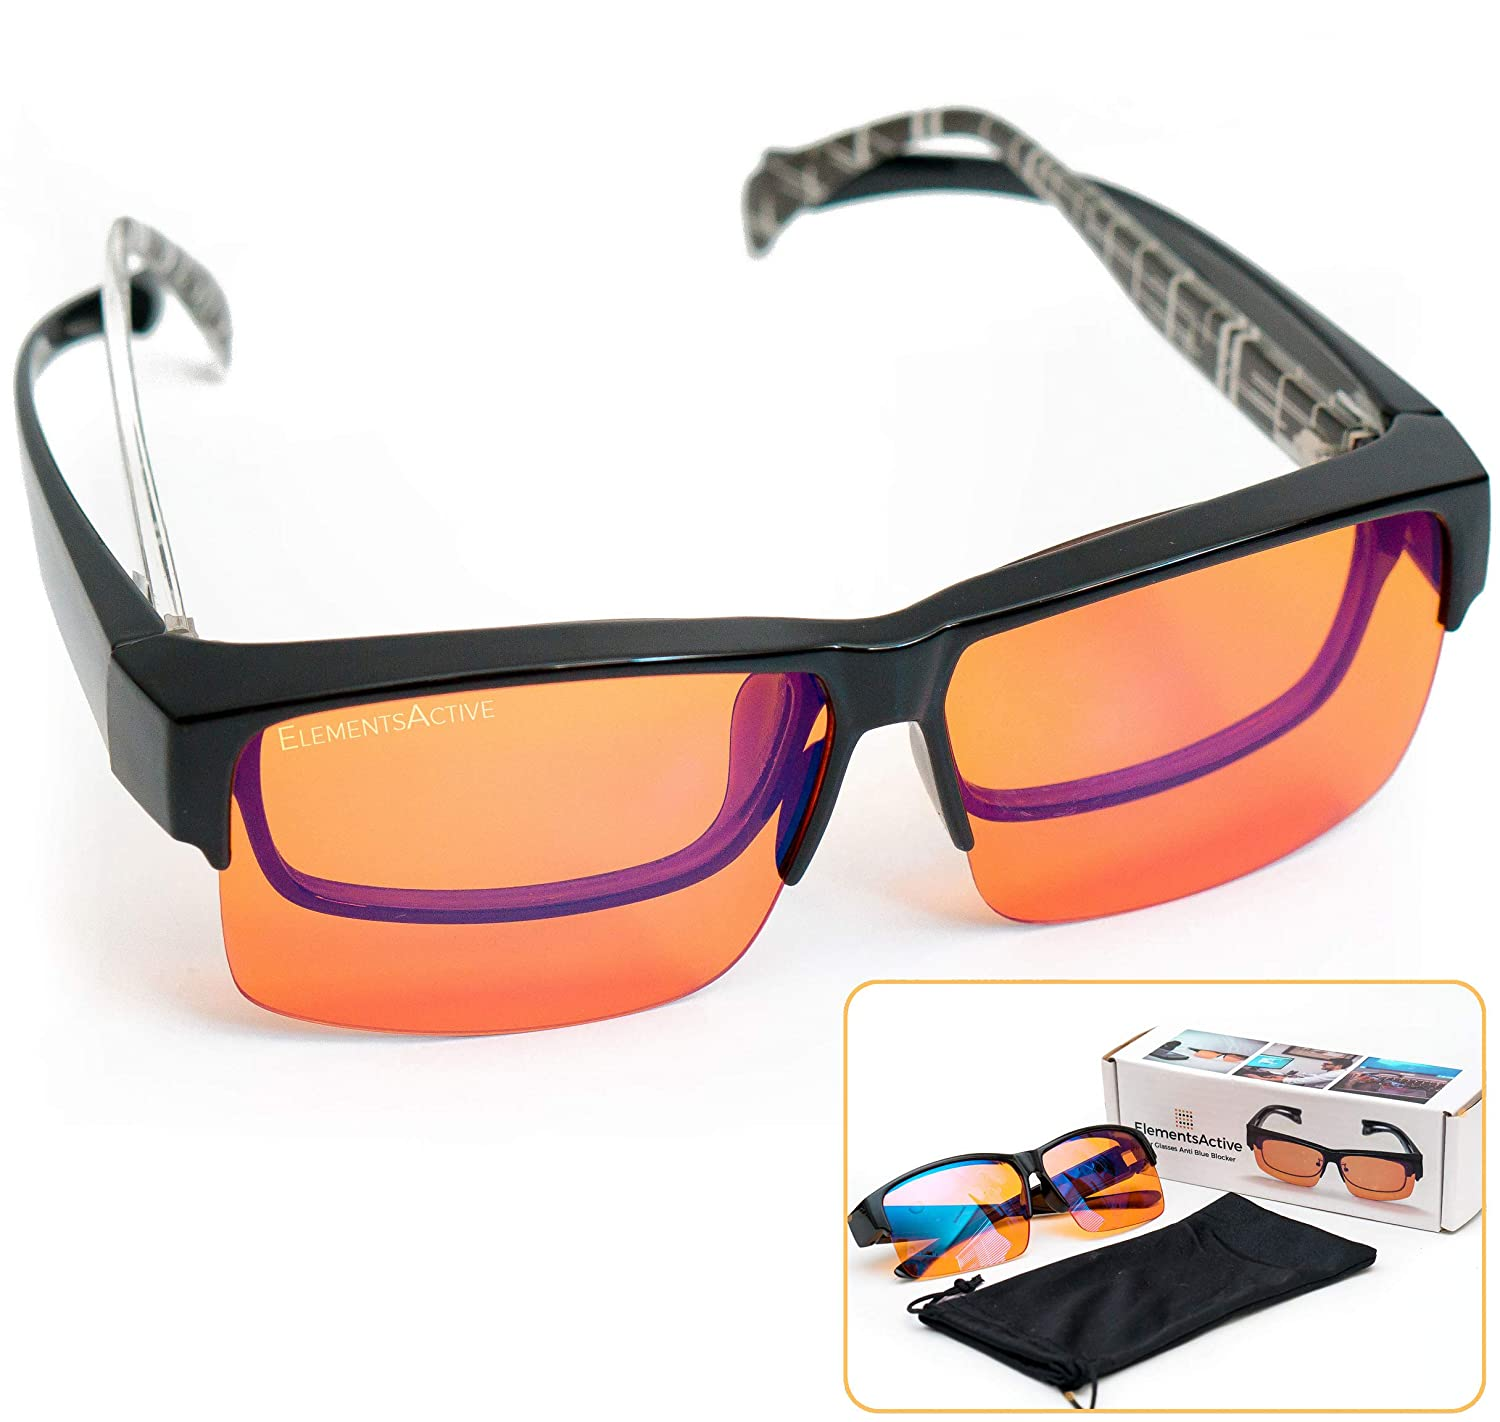 ElementsActive Fitover Anti-Blue Blocking Computer Glasses | Fits Over Prescription Eyeglasses | Amber Orange to Block Blue Light | Better Night Sleep & Reduce Eyestrain Migraine Headaches Insomnia